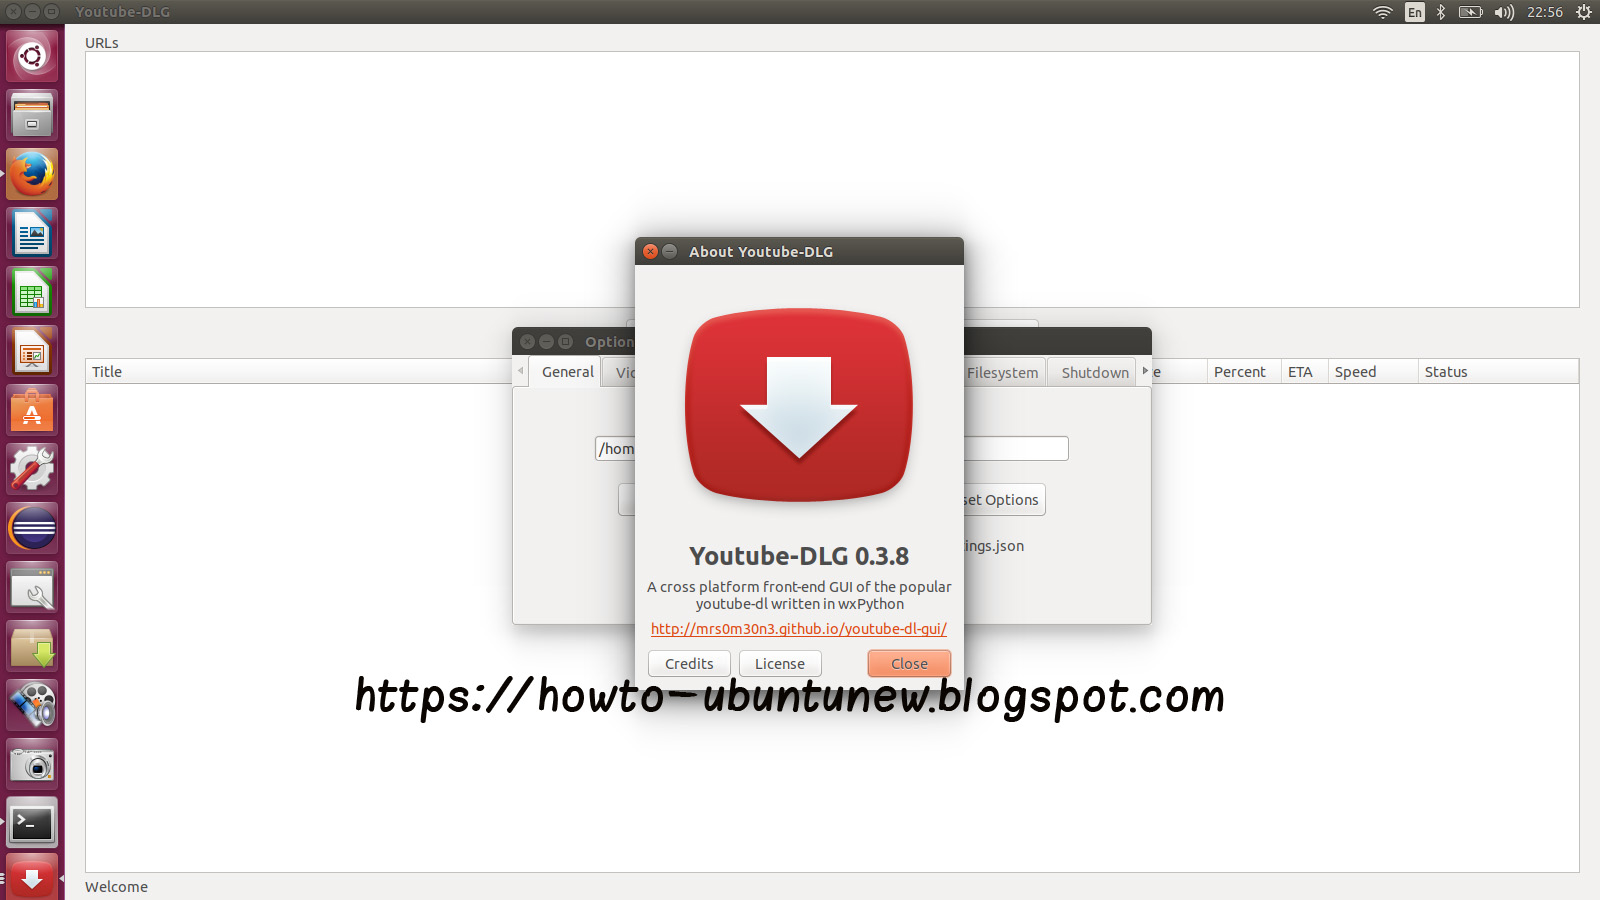 How to install program on Ubuntu: How to Install YouTube-DL